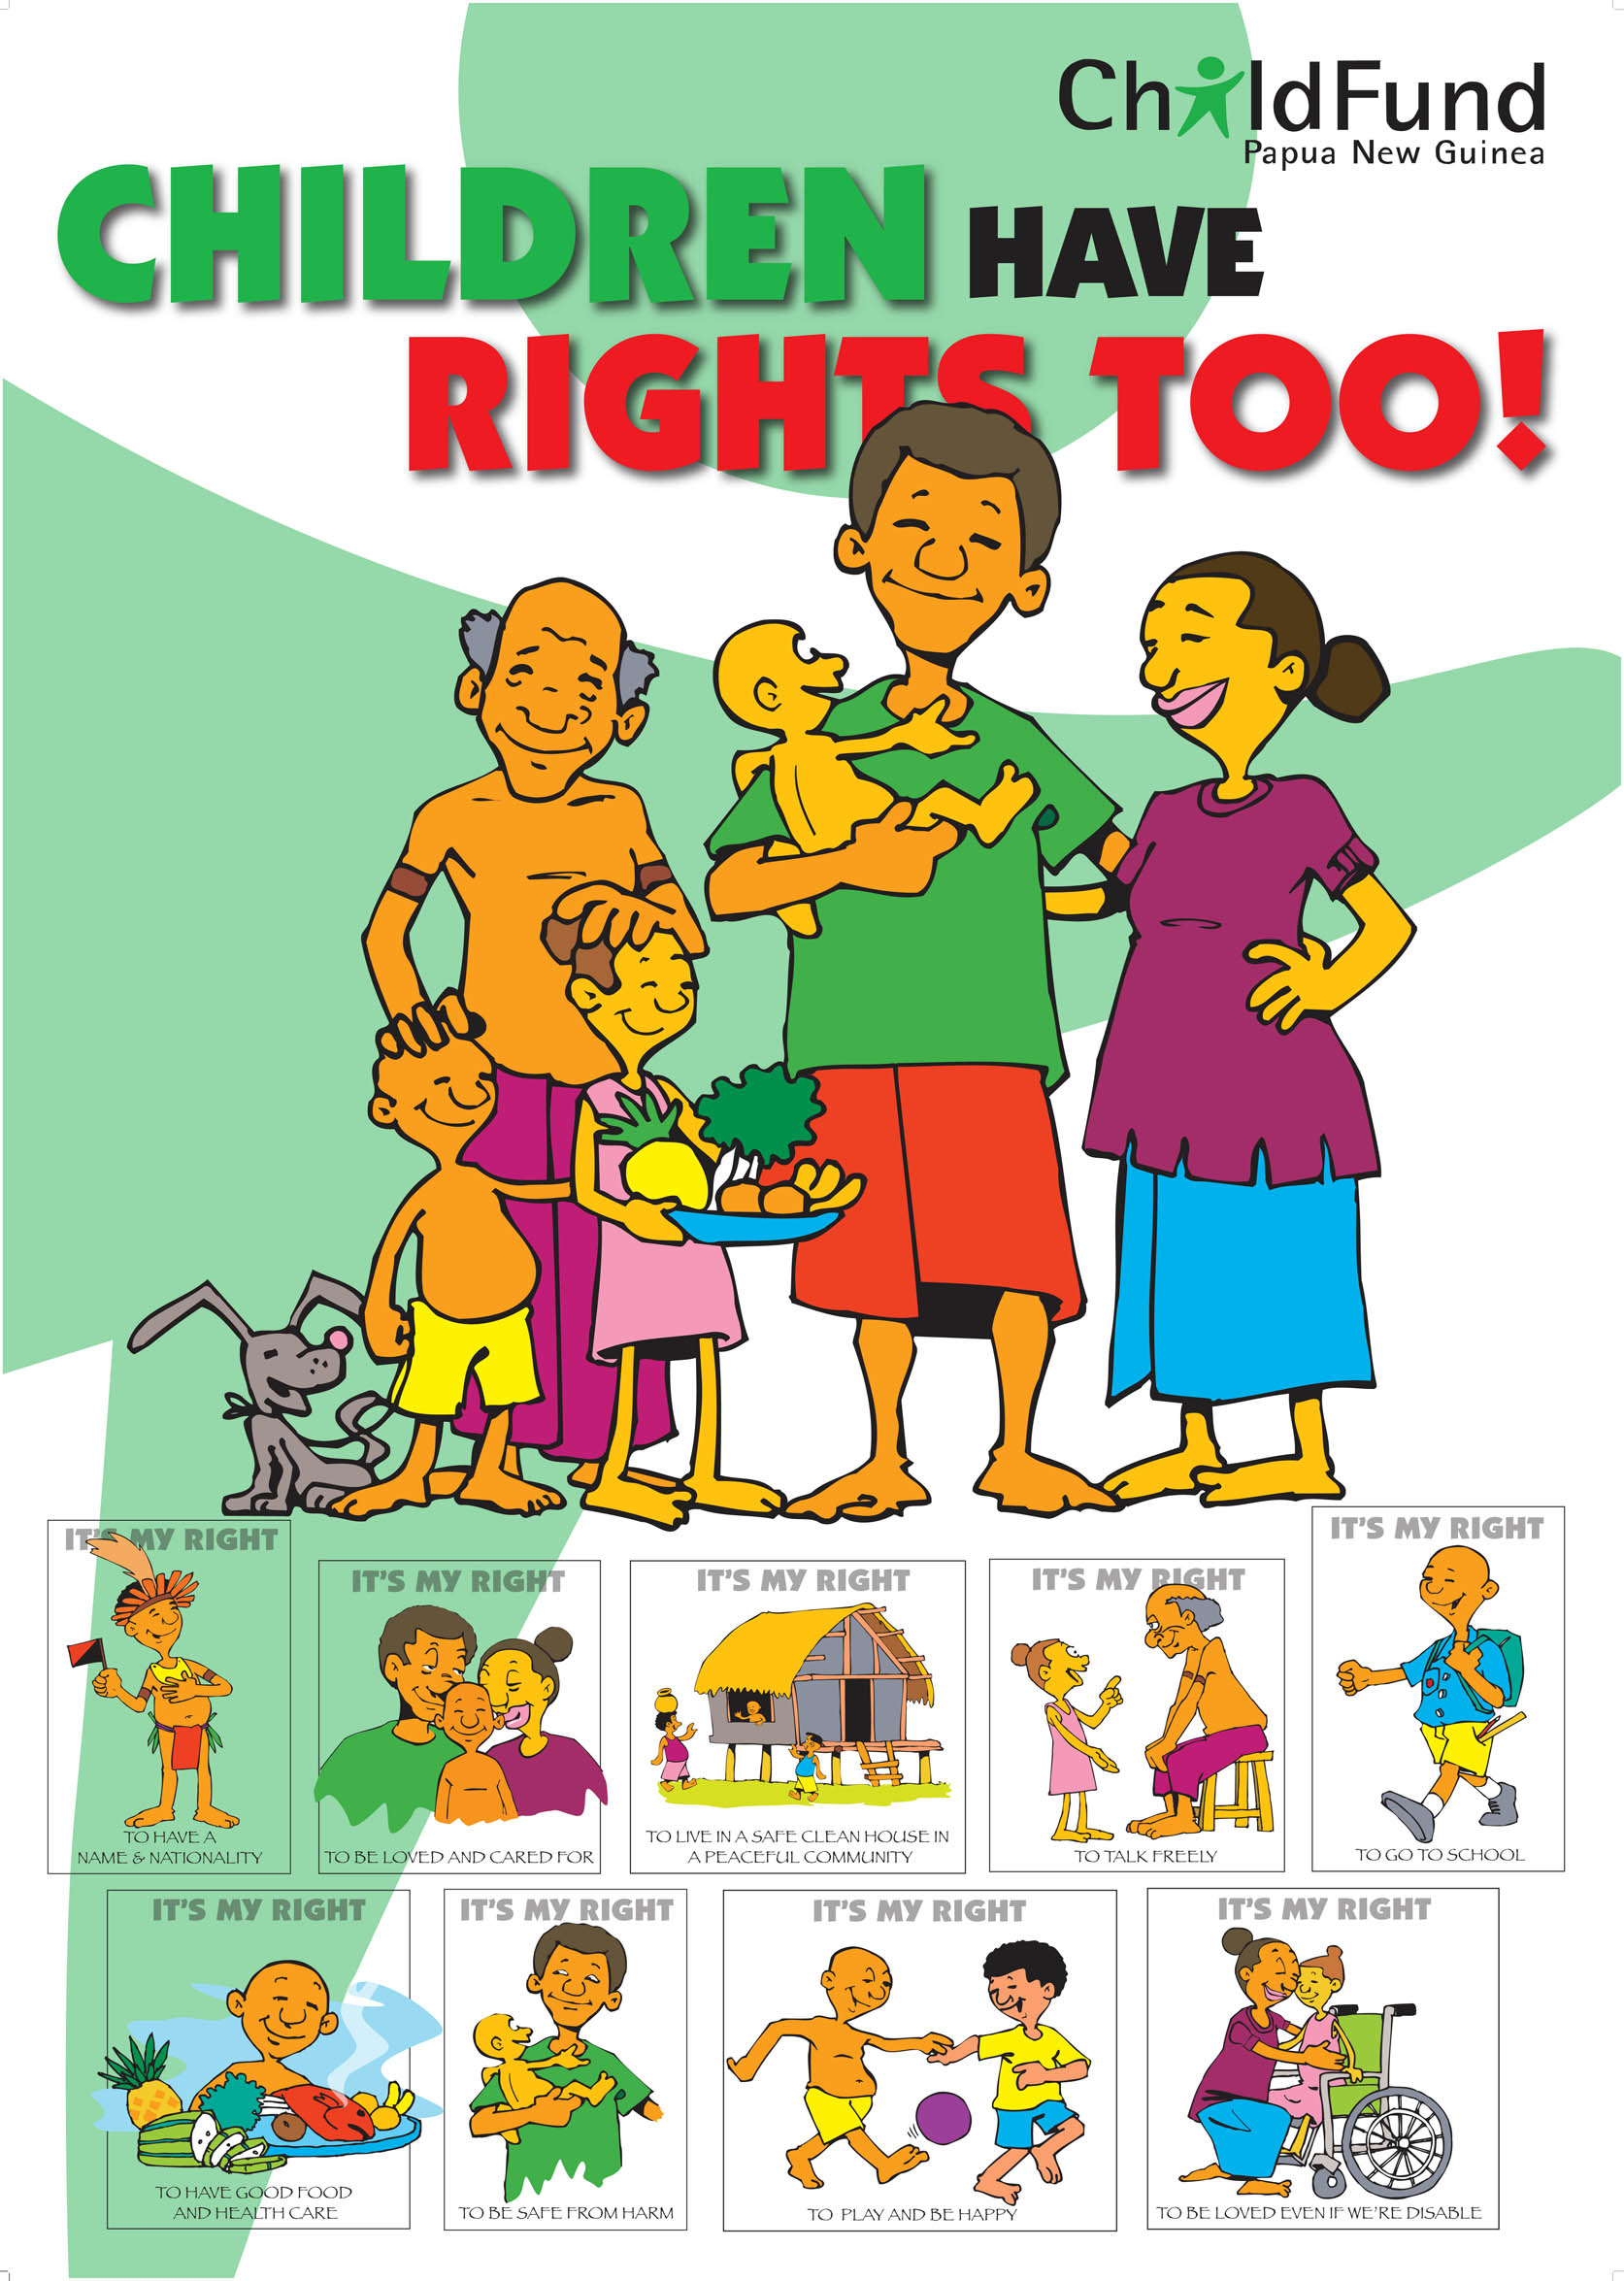 20 November World Day For Rights Of The Child